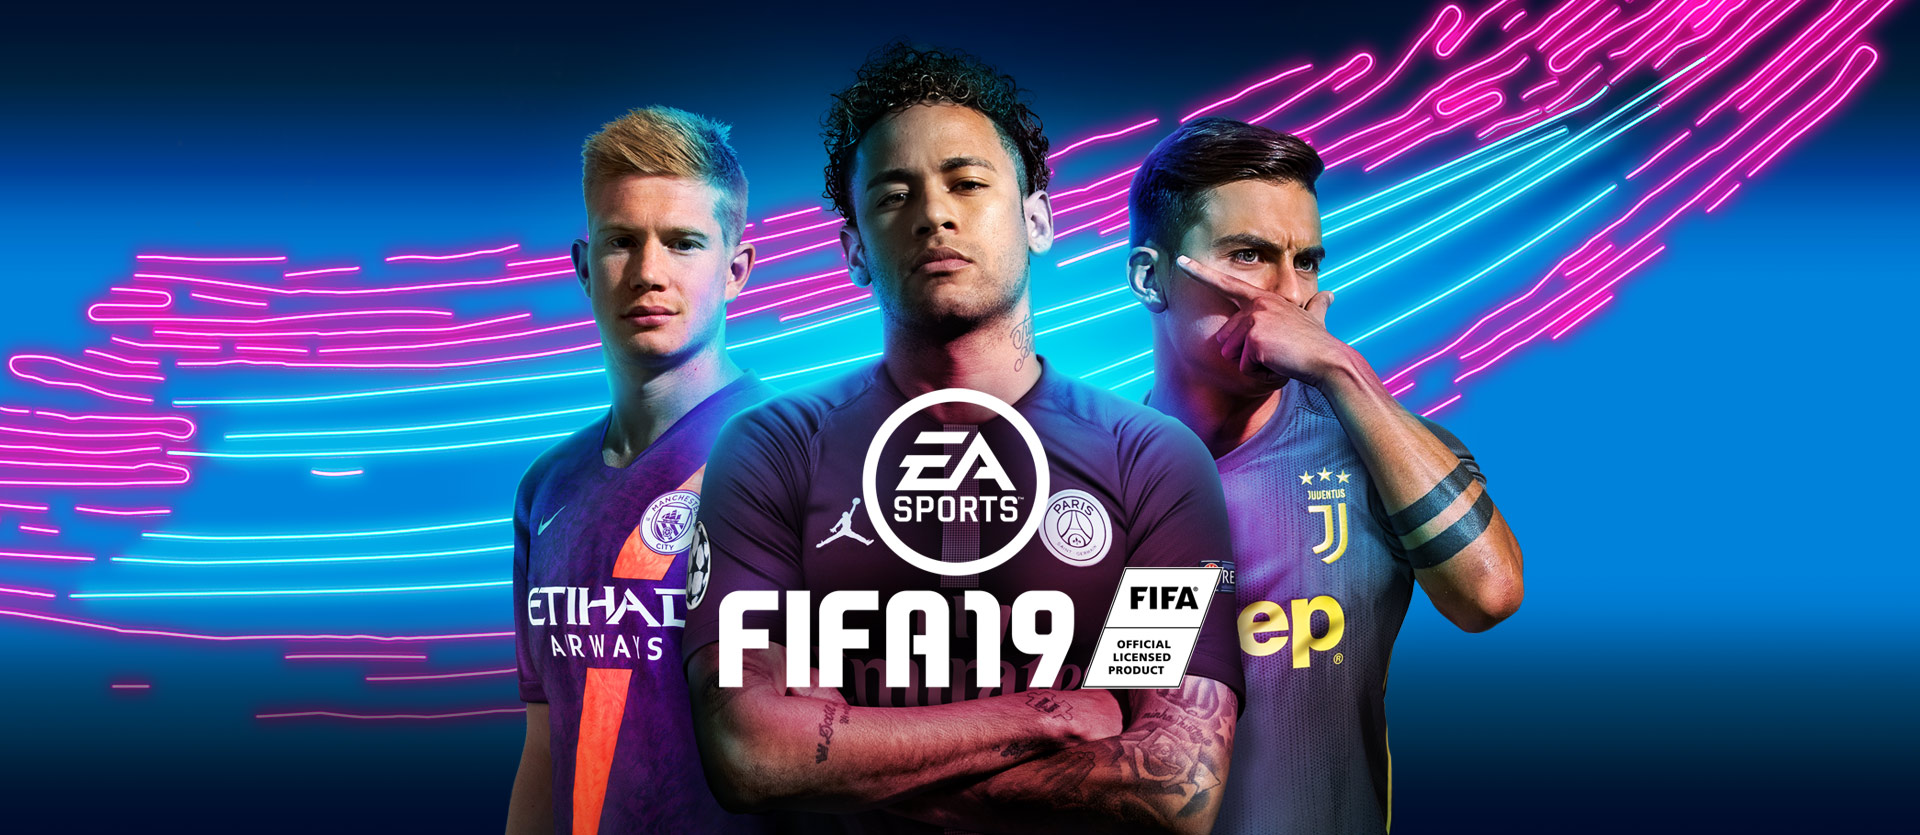 FIFA 19 Ultimate Team Kevin De Bruyne, Neymar and Paulo Dybala posing with ultimate team jerseys